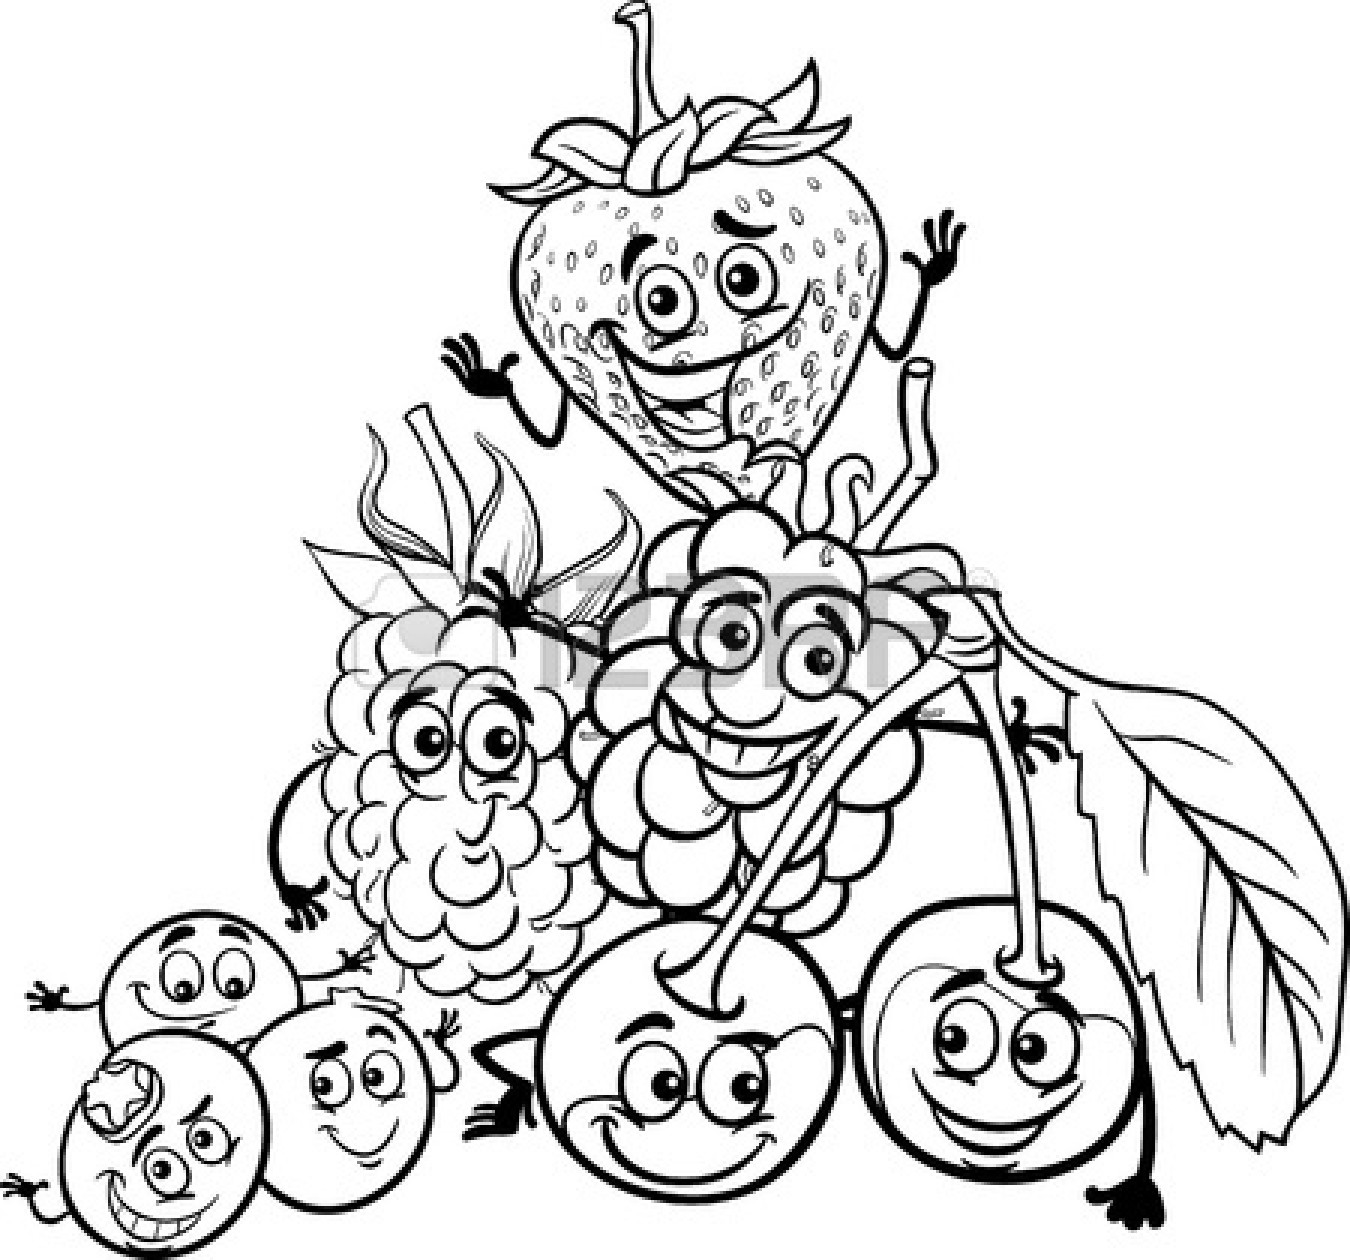 Vegetable Clipart Black And White   Clipart Panda   Free Clipart